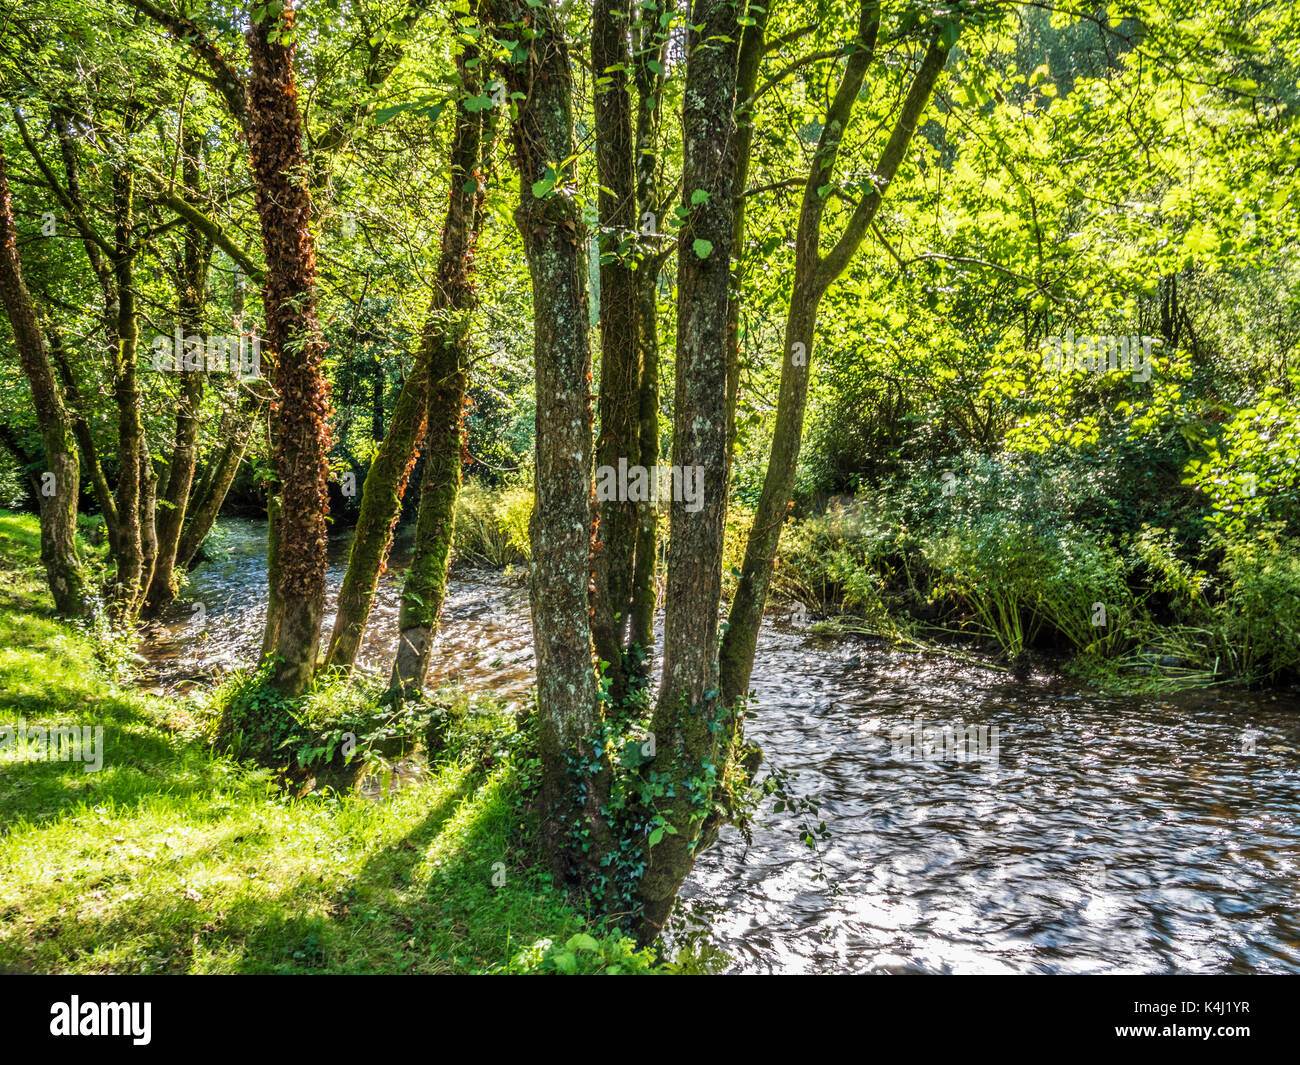 The River Exe in the Exmoor National Park, Somerset. - Stock Image